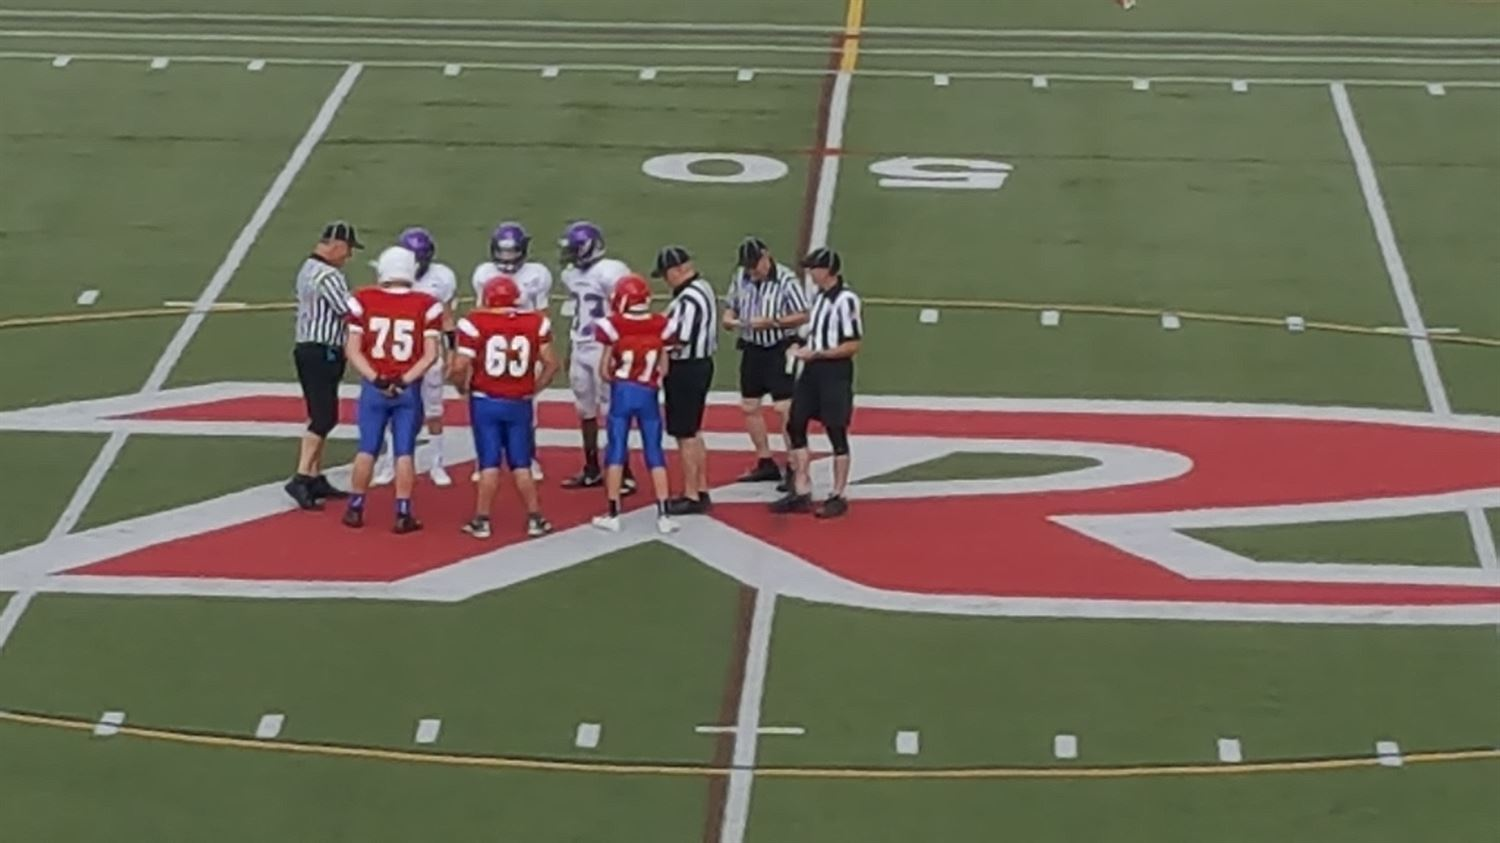 Revere High School - Revere 7th & 8th Grade Football